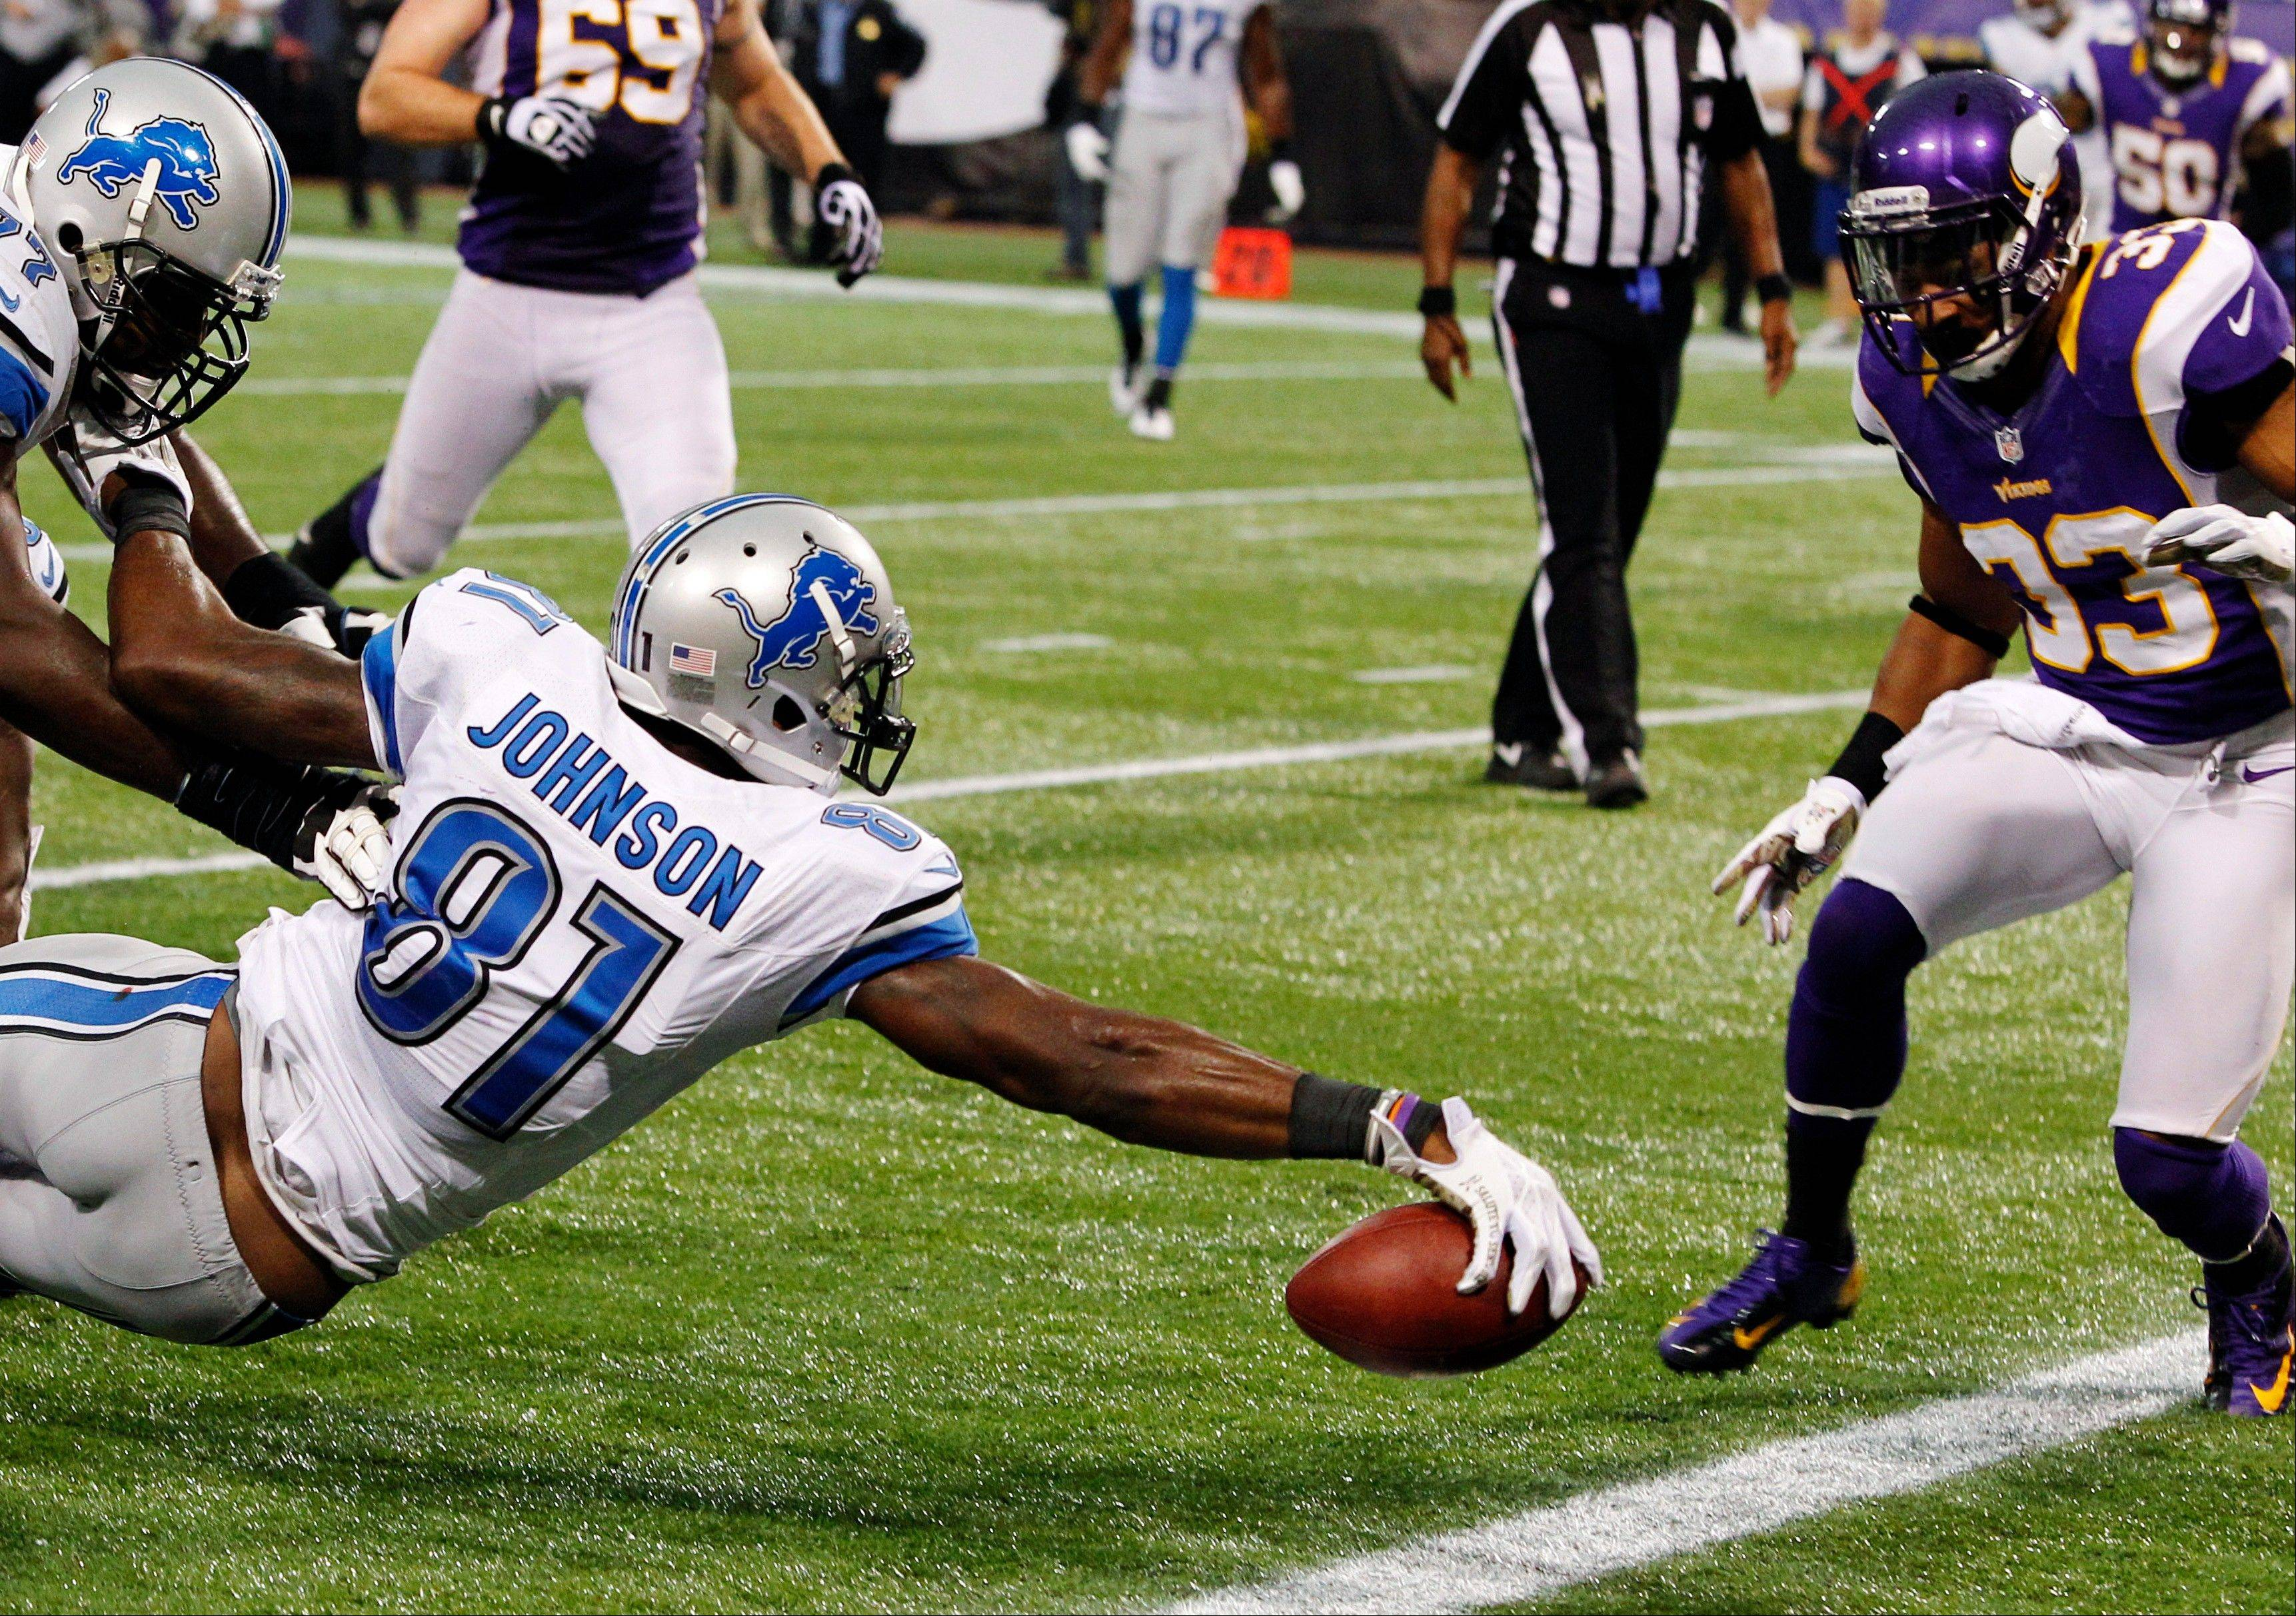 Detroit Lions wide receiver Calvin Johnson reaches for the end zone in front of Minnesota Vikings safety Jamarca Sanford while scoring on an 11-yard touchdown reception Sunday during the second half in Minneapolis.